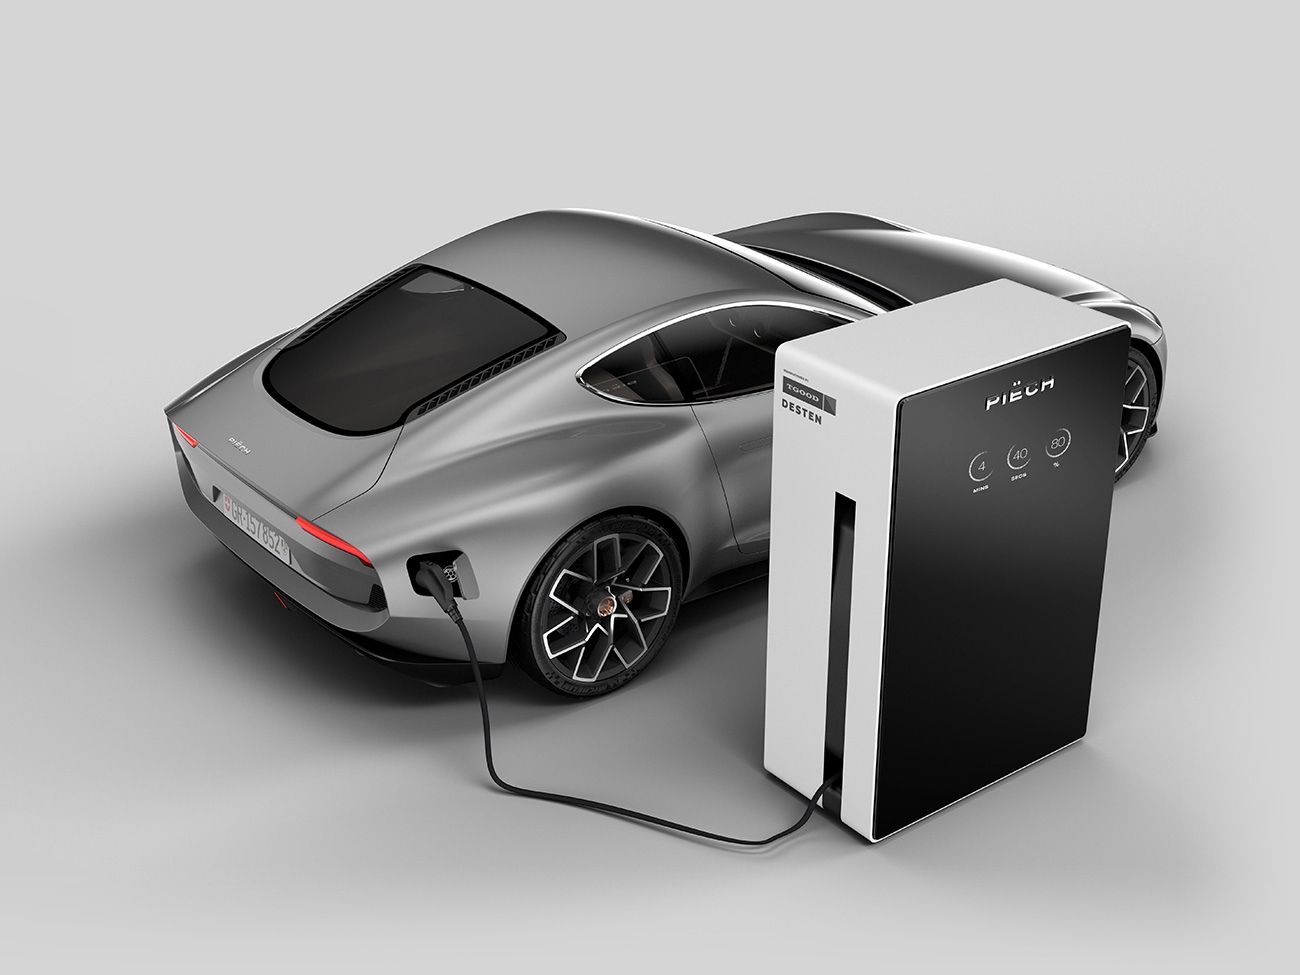 Desten Group has revealed a charging device concept capable of transmitting up to 900 kW to the car, more than thrice as much as the Tesla Supercharger can do. Replenishing 80% of the charge takes mere 4 minutes 40 seconds.